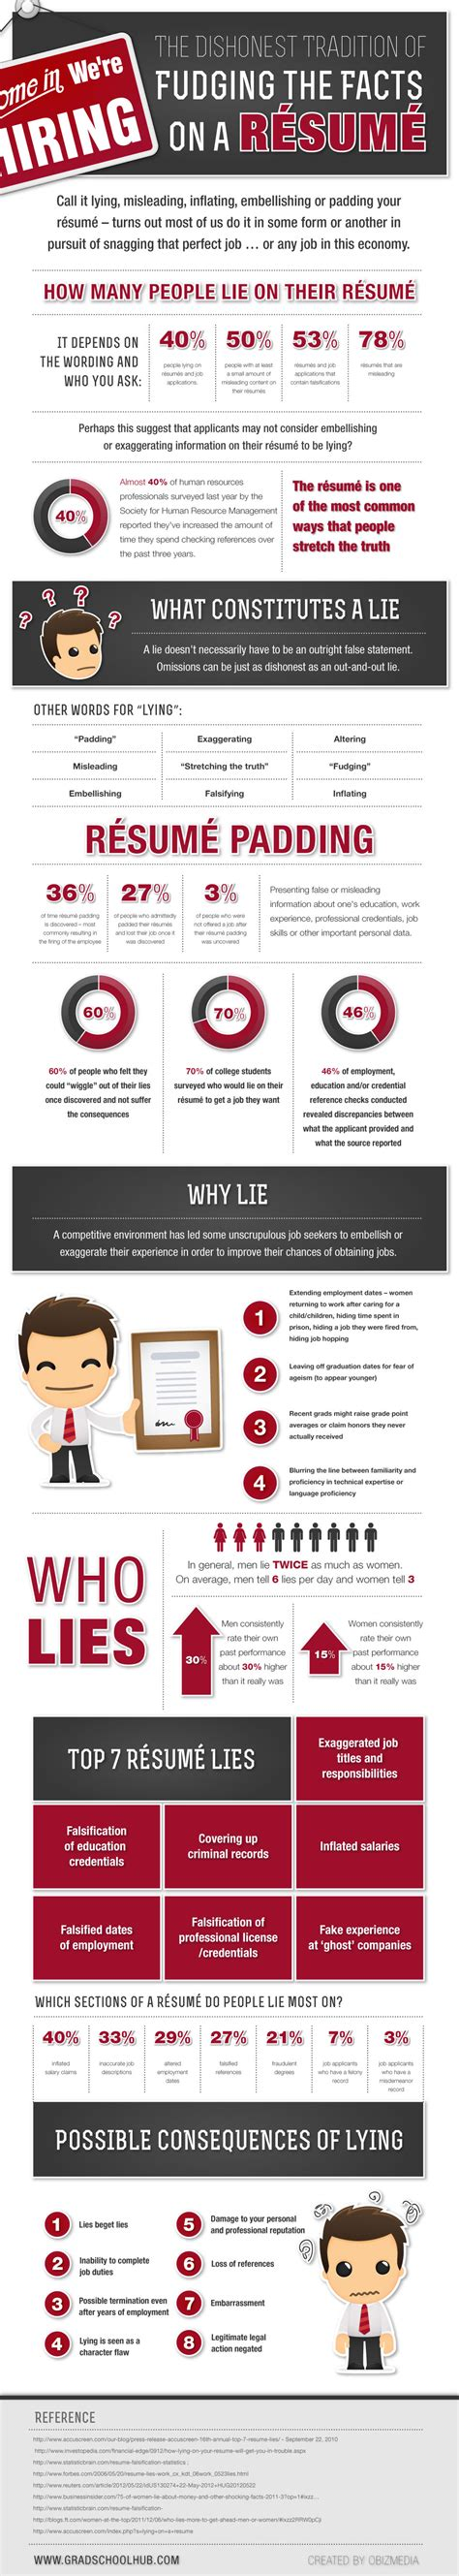 infographic the dishonest tradition of fudging the facts on a resume